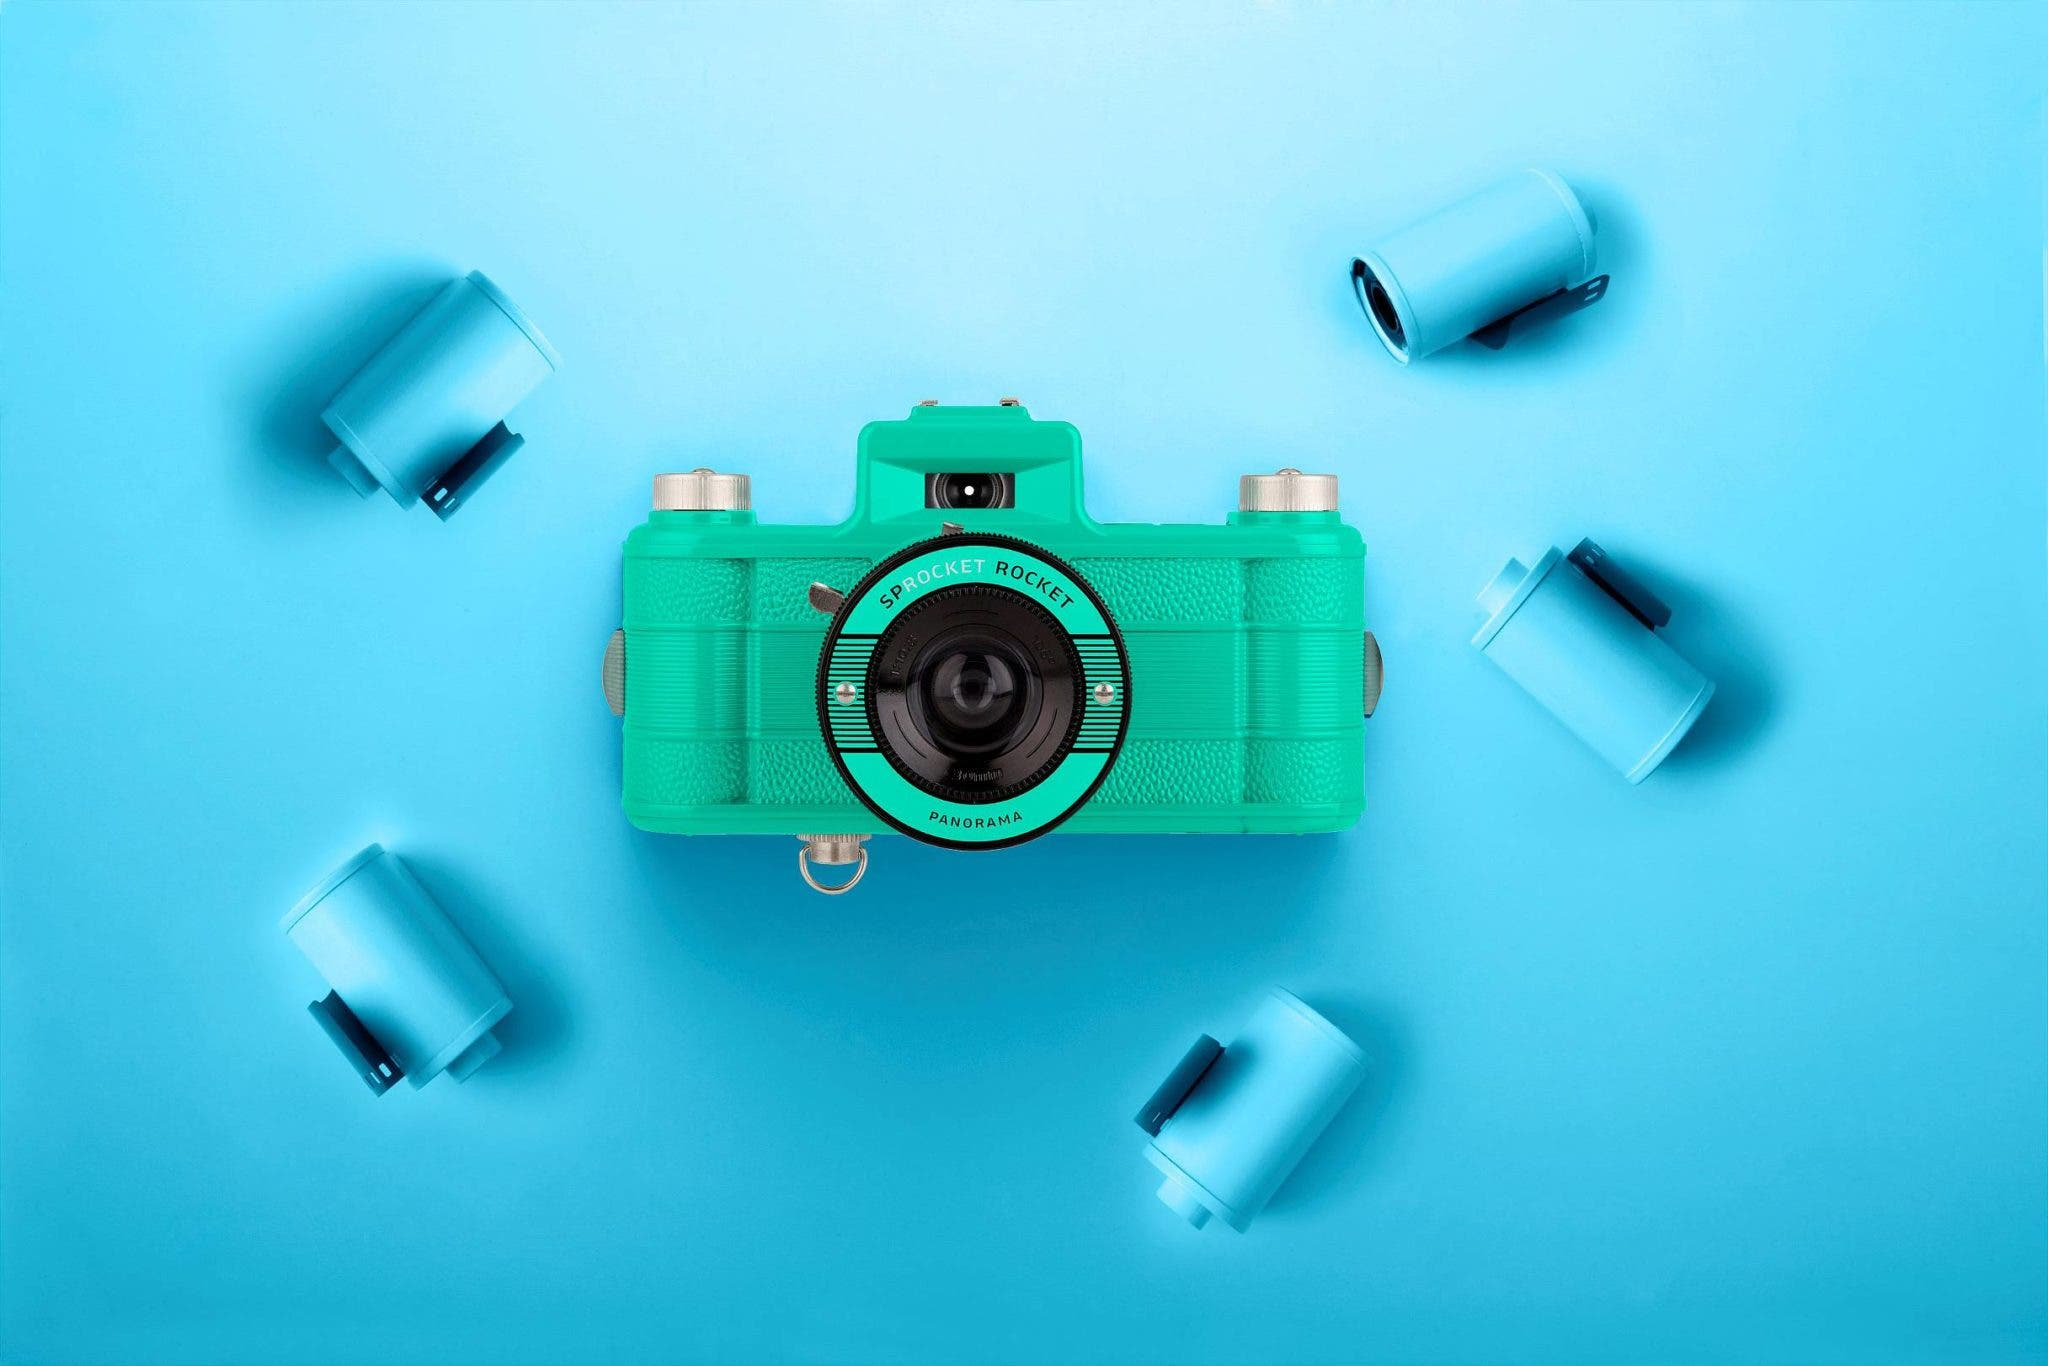 The Lomography Sprocket Rocket Teal 2.0 Is Pretty Much the Same Camera as Before